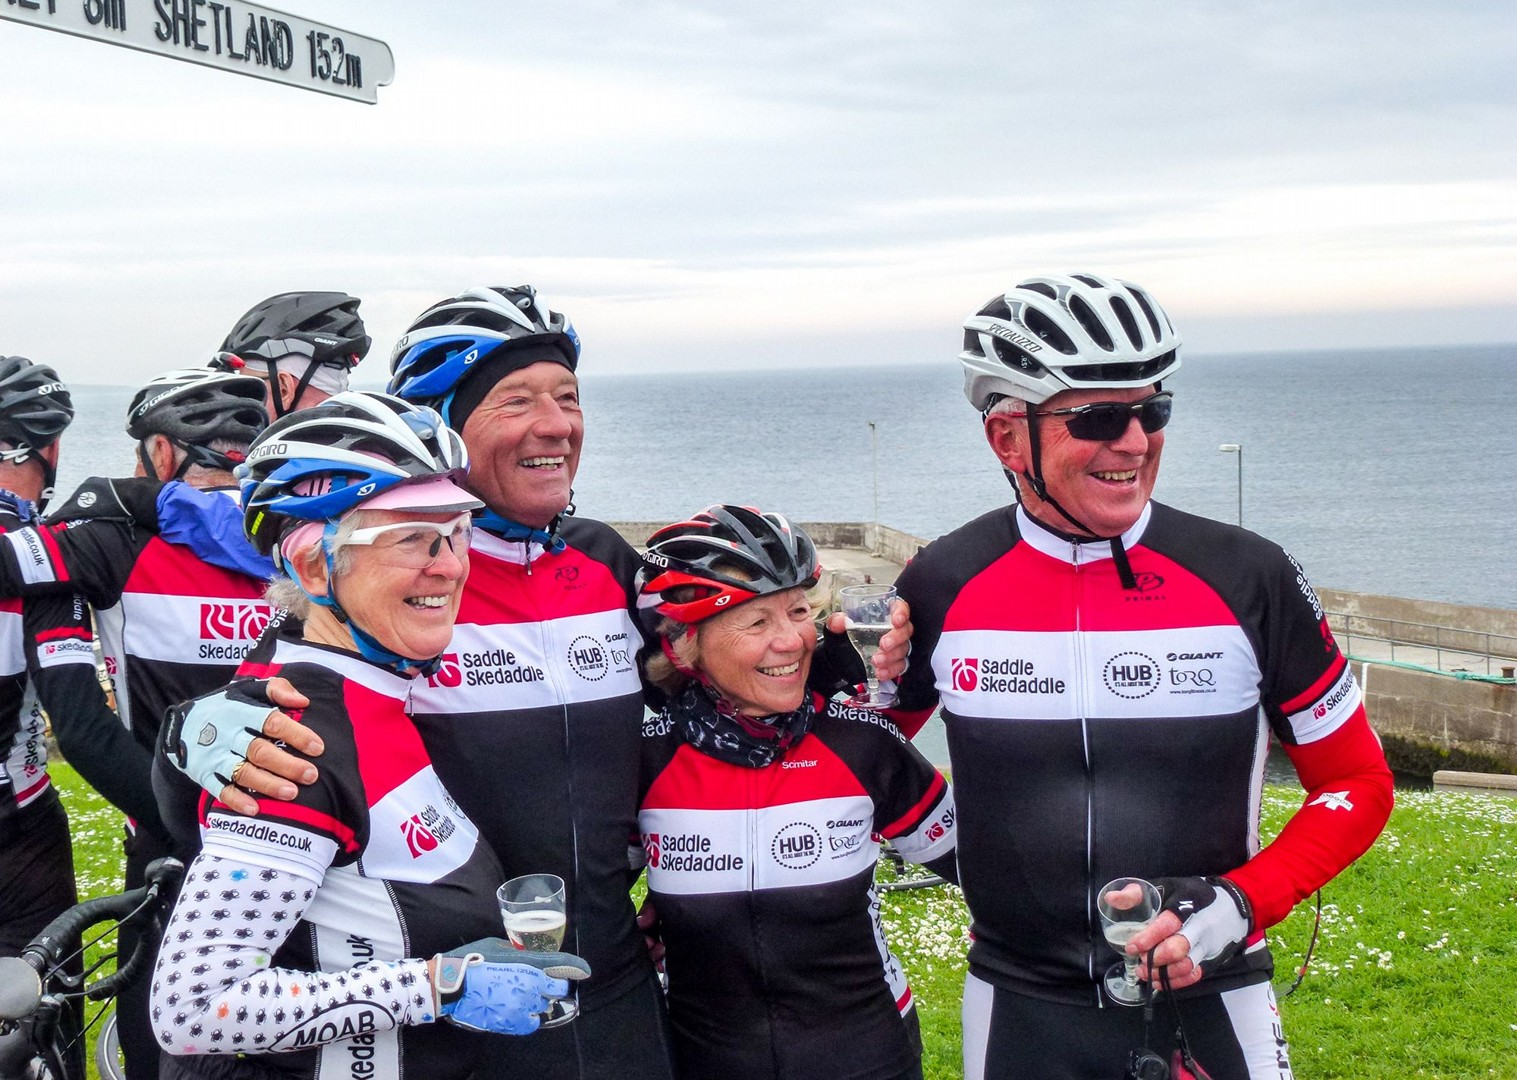 lands-end-to-john-ogroats-saddle-skedaddle-guided-road-cycling-holiday.jpg - UK - Land's End to John O'Groats Classic (16 days) - Guided Road Cycling Holiday - Road Cycling